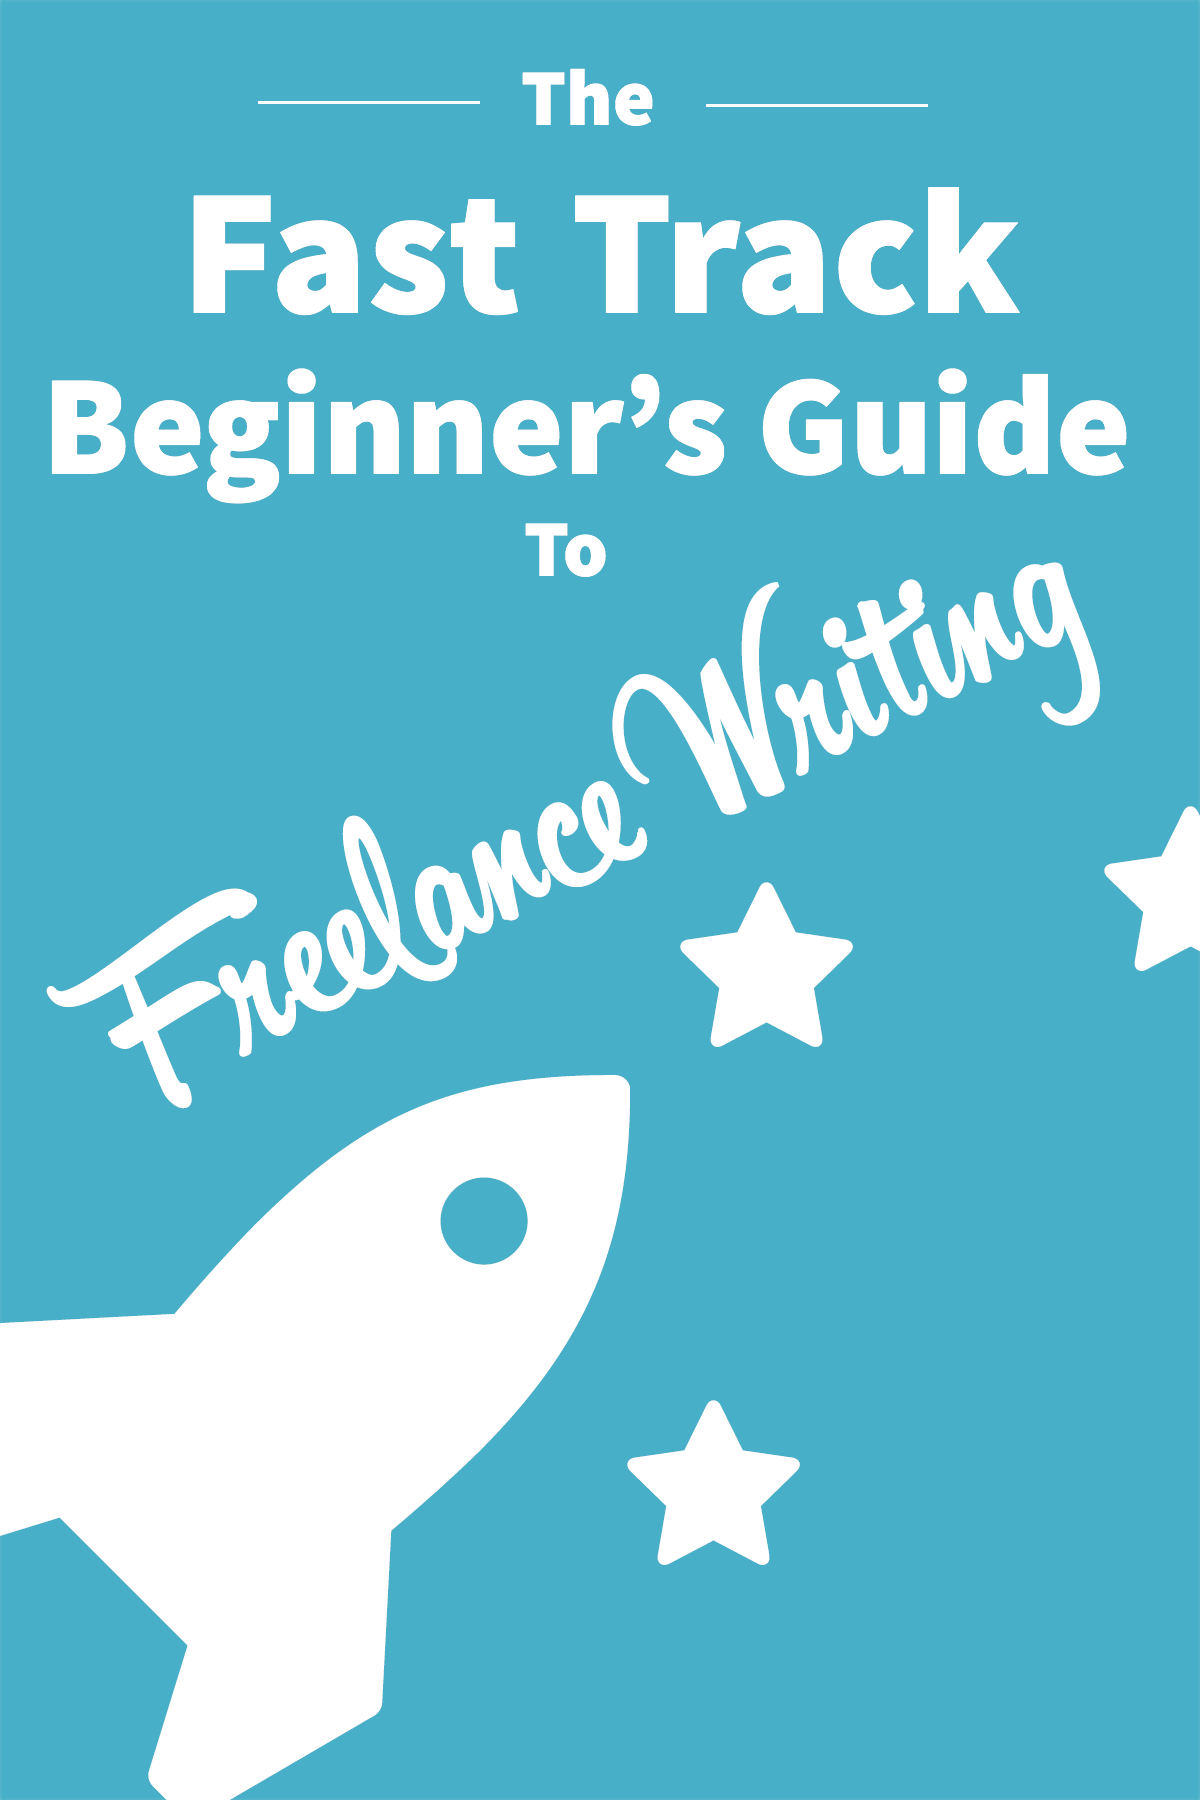 The Fast Track Beginner's Guide to Freelance Writing